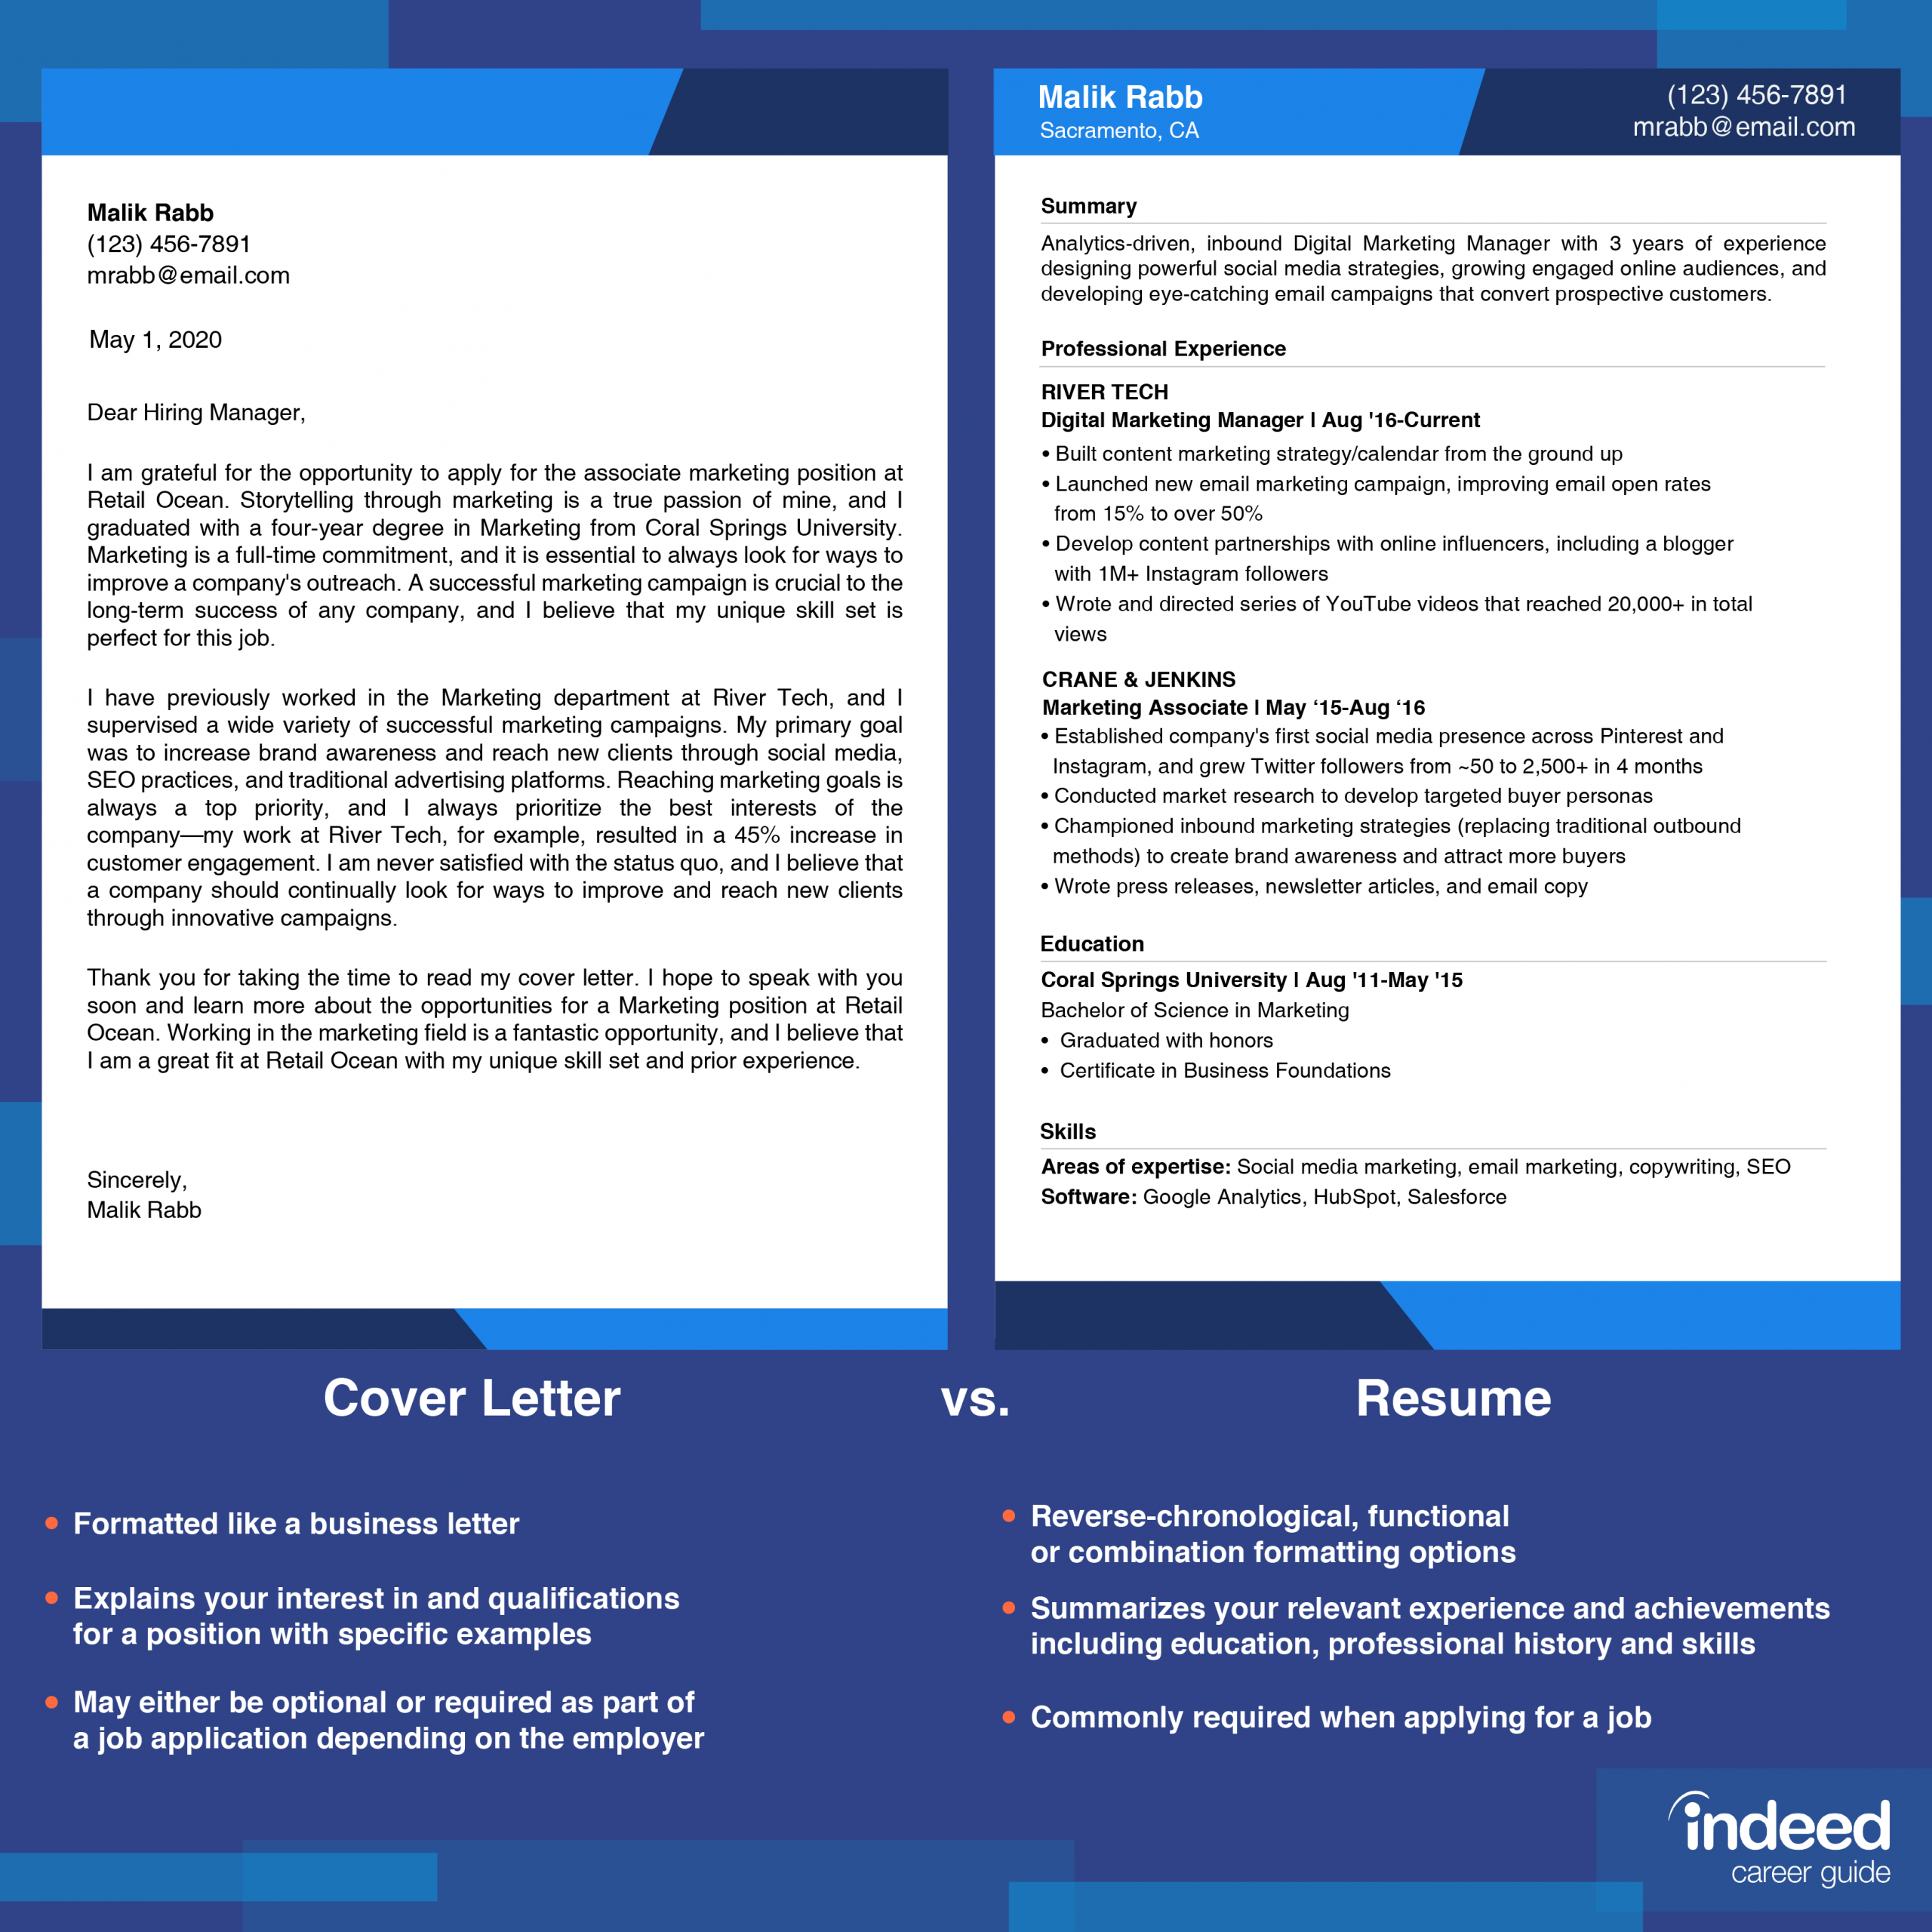 Are Cover Letter And Resume The Same • Invitation Template